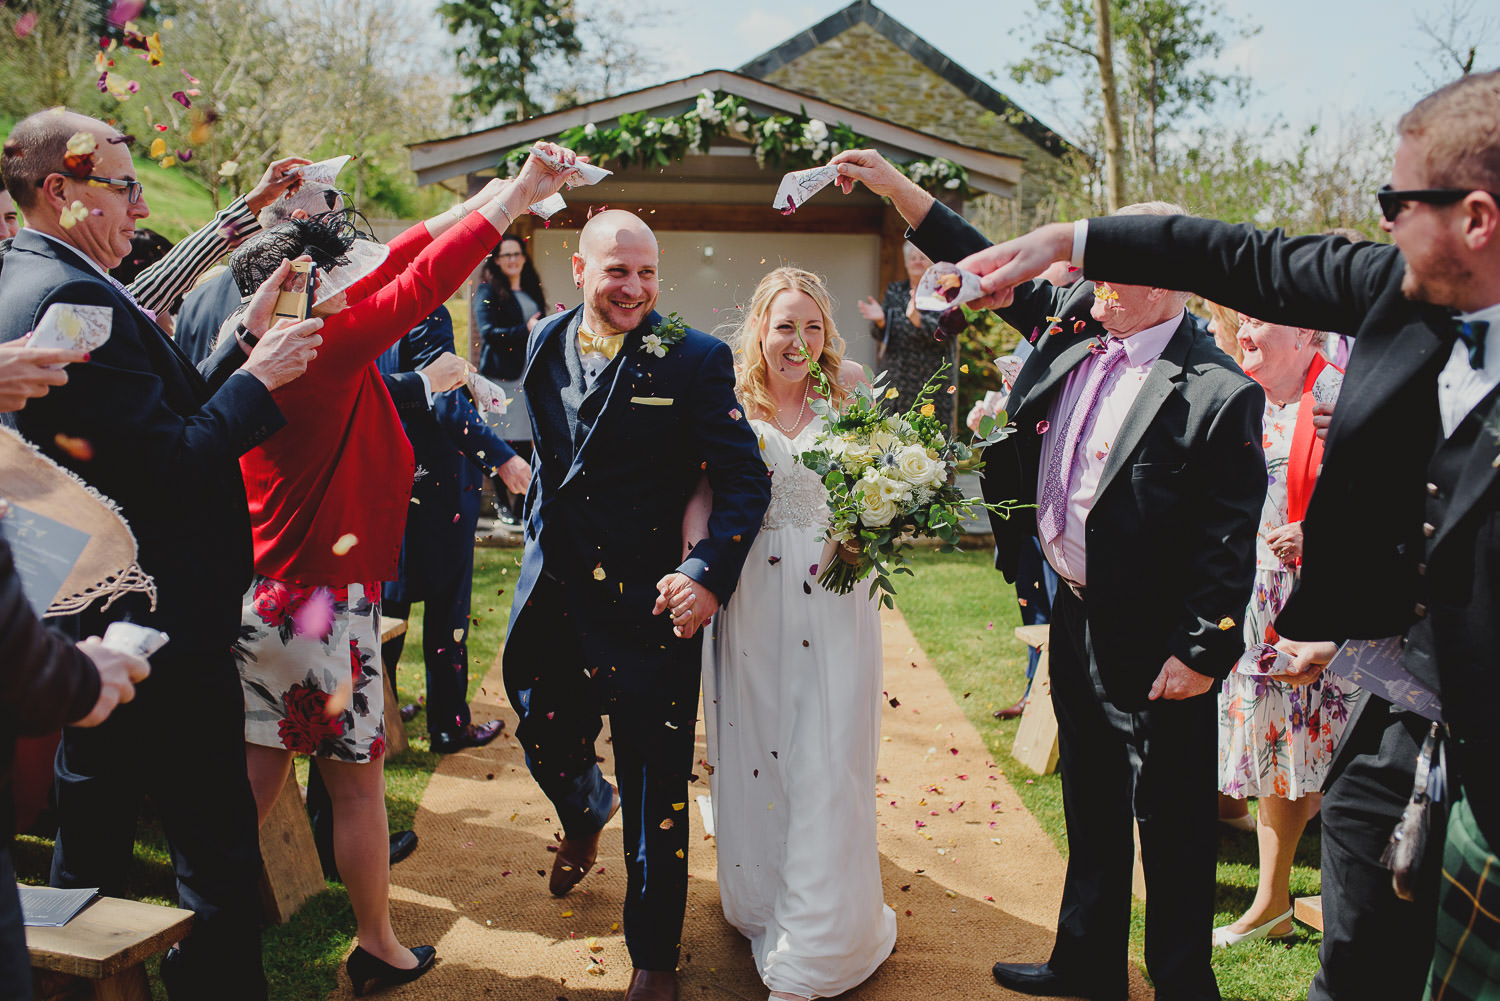 Outdoor wedding at Kilminorth Cottages